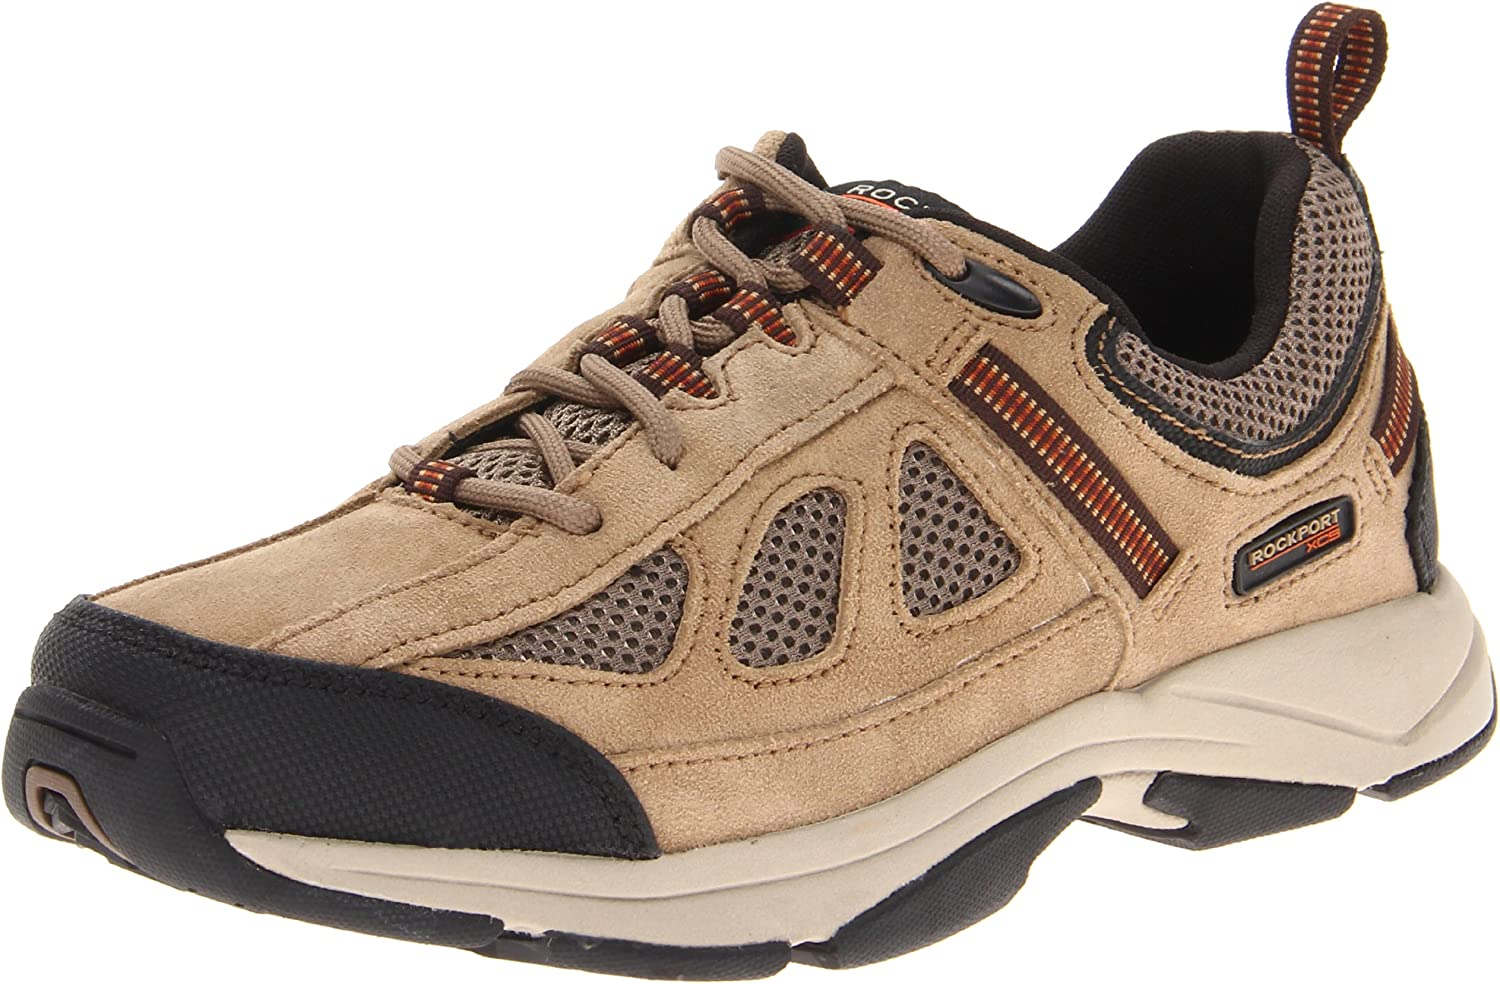 Rockport Men's Rock Cove Fashion Sneaker